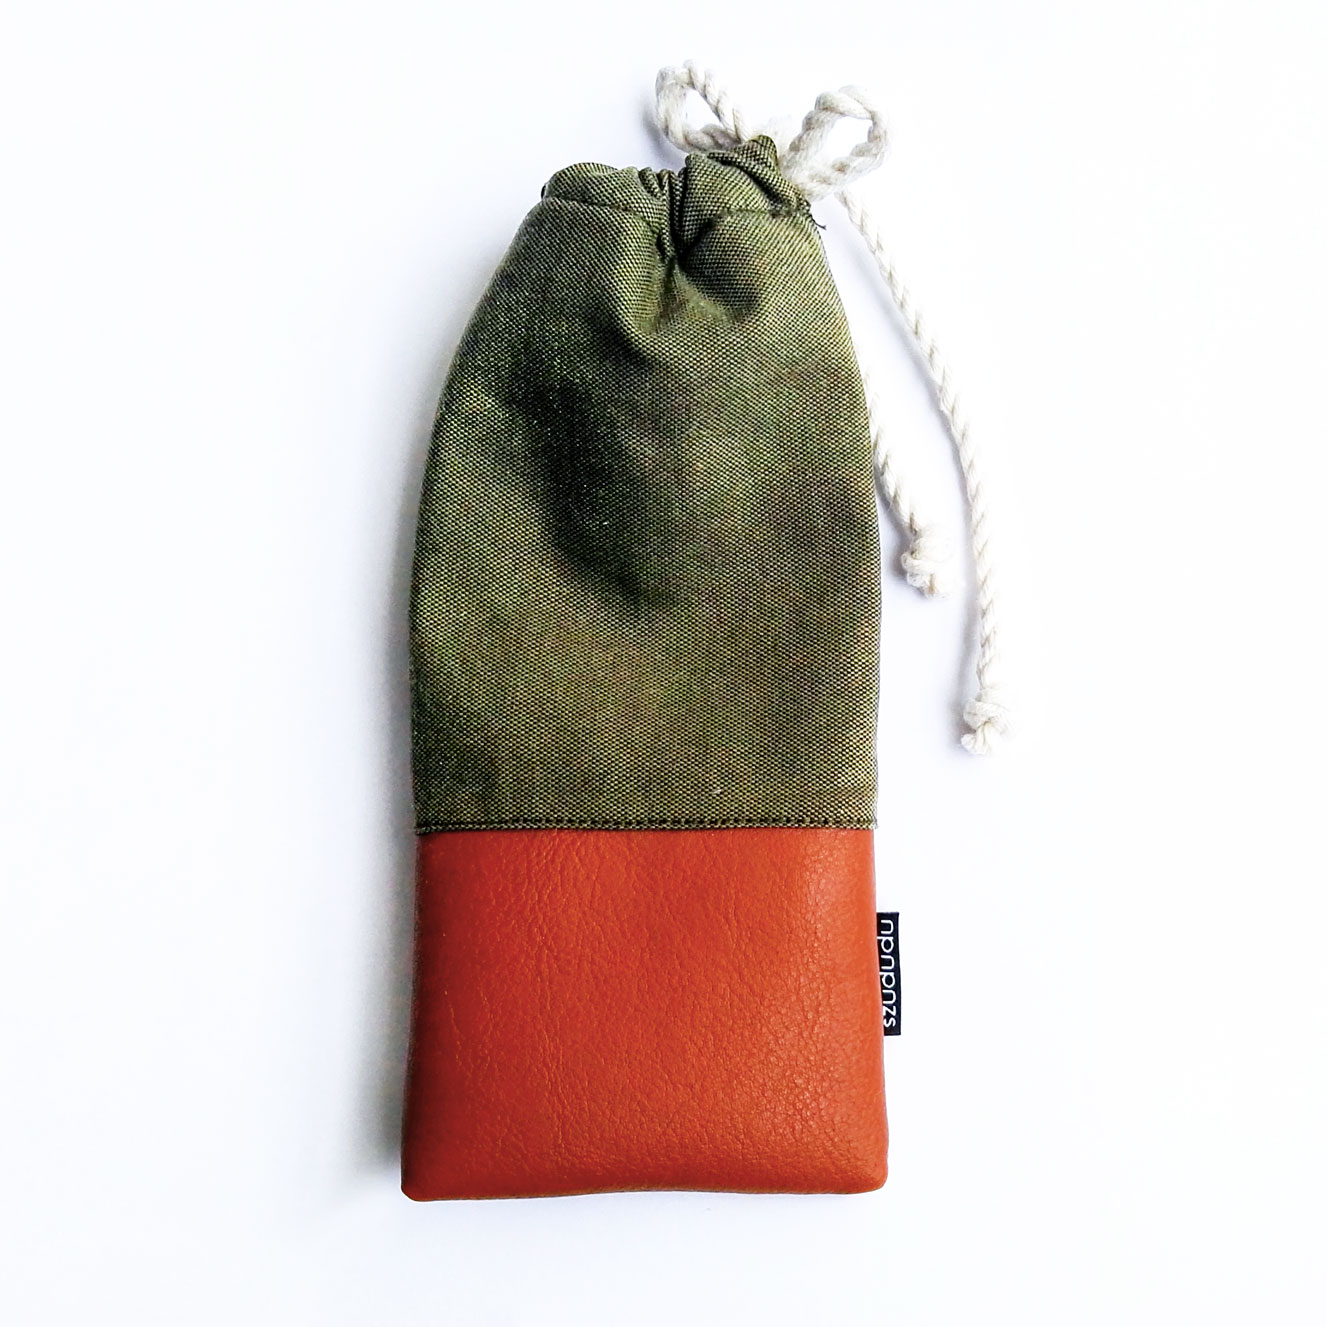 eyeglass-case-sunglasses-case-olive